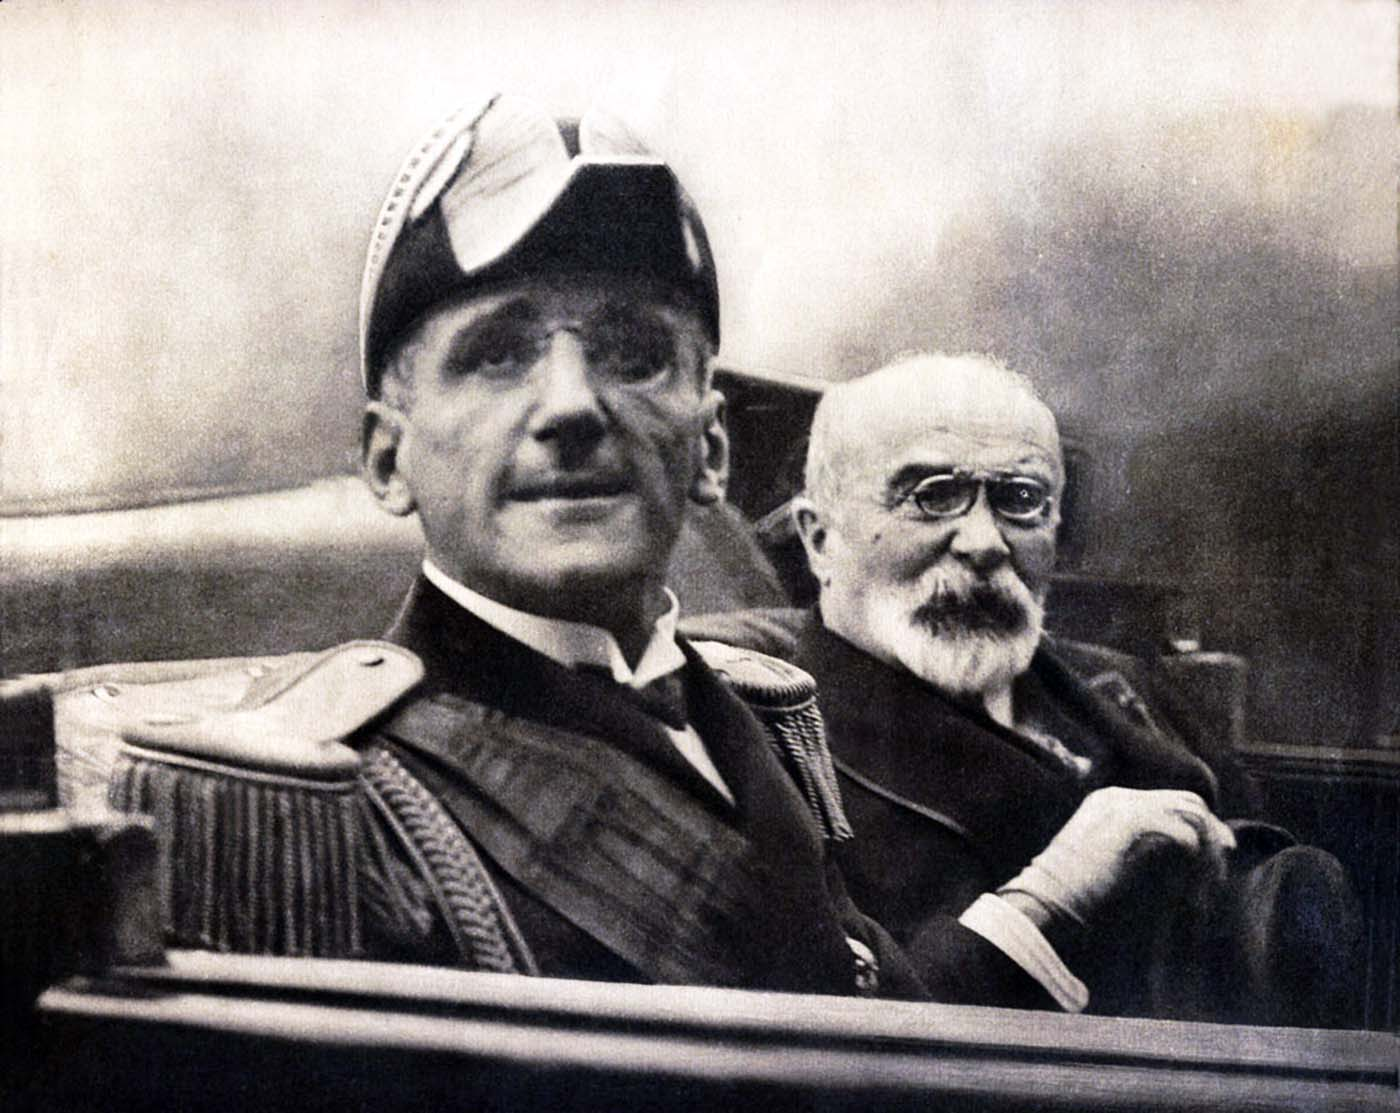 King Alexander I of Yugoslavia and Louis Barthou, French Foreign Minister, pictured on the day of their assassinations by Vlado Chernozemski, 1934.